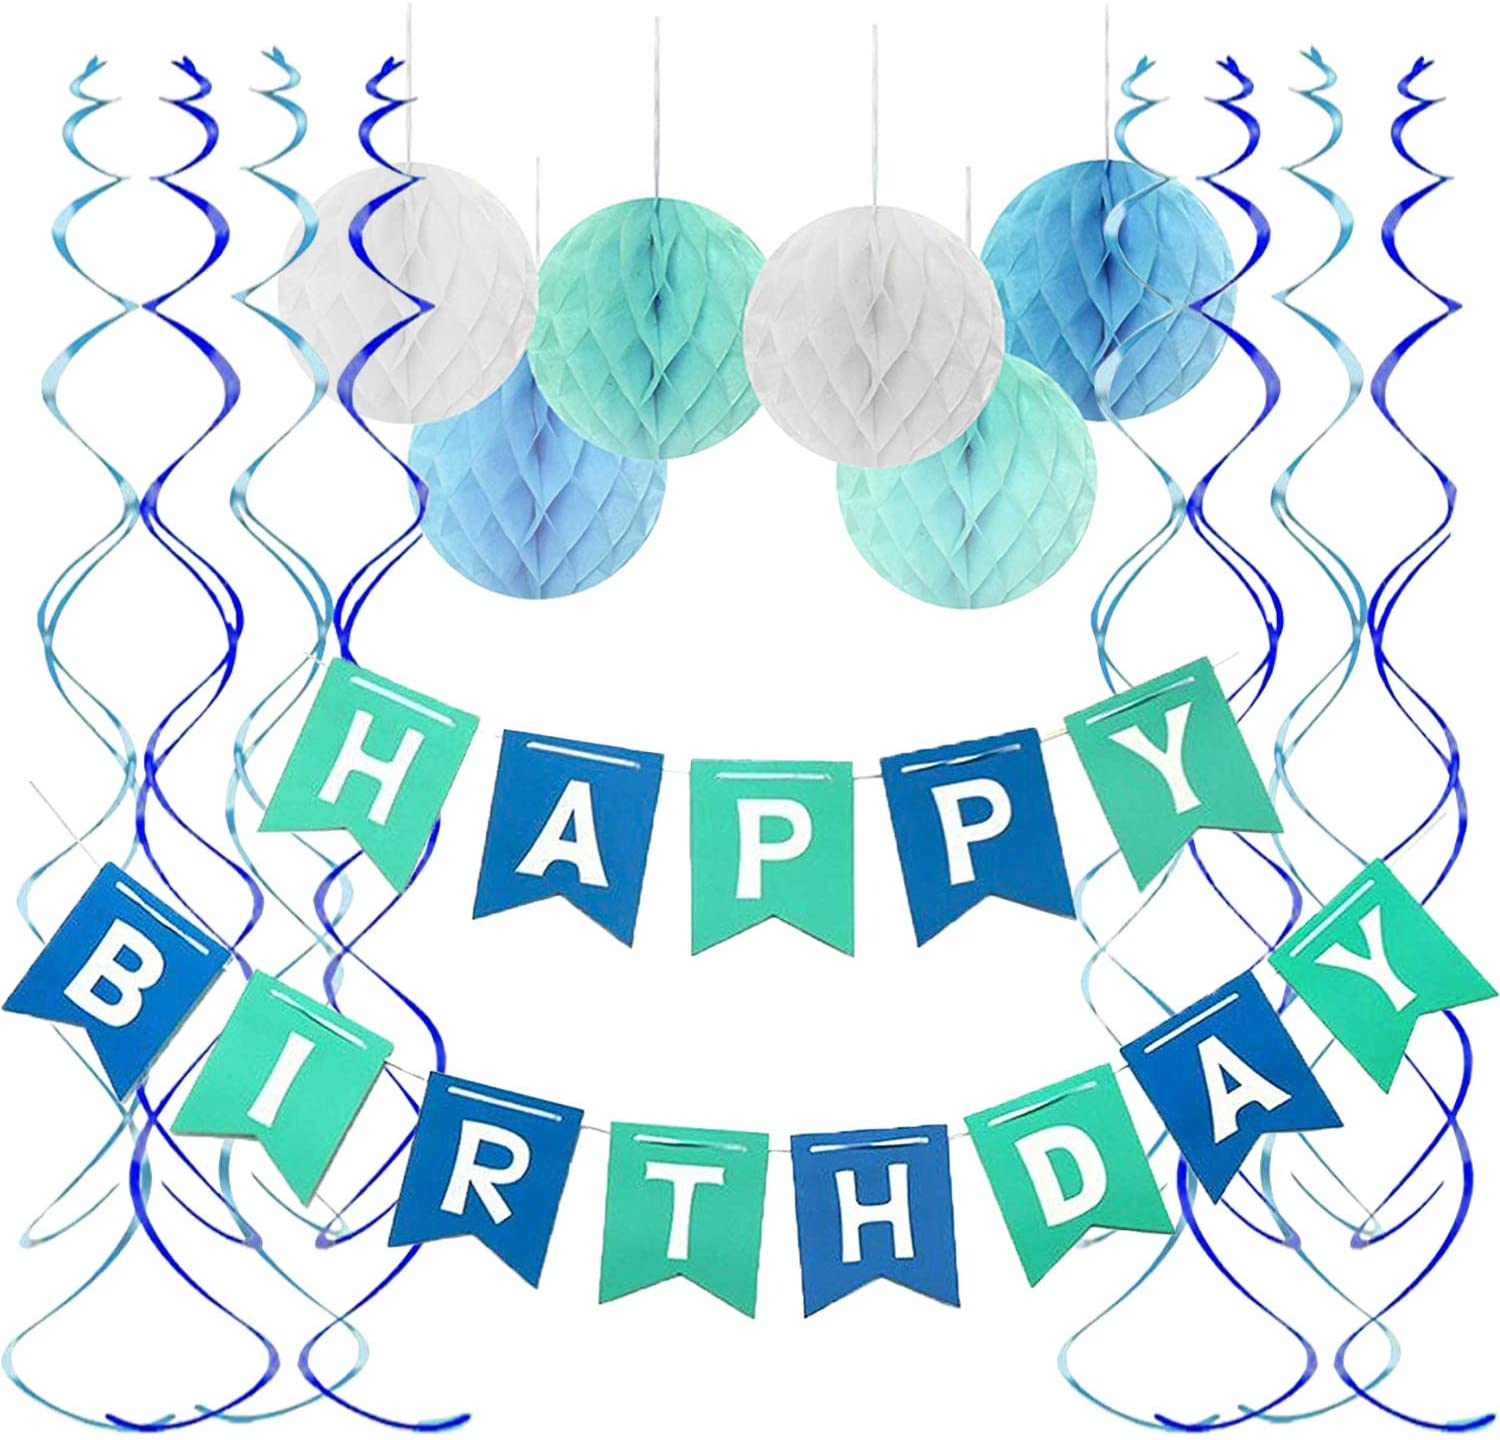 Fecedy Be super Large discharge sale welcome Blue Happy Birthday Banner Swirls balls Streame Honeycomb